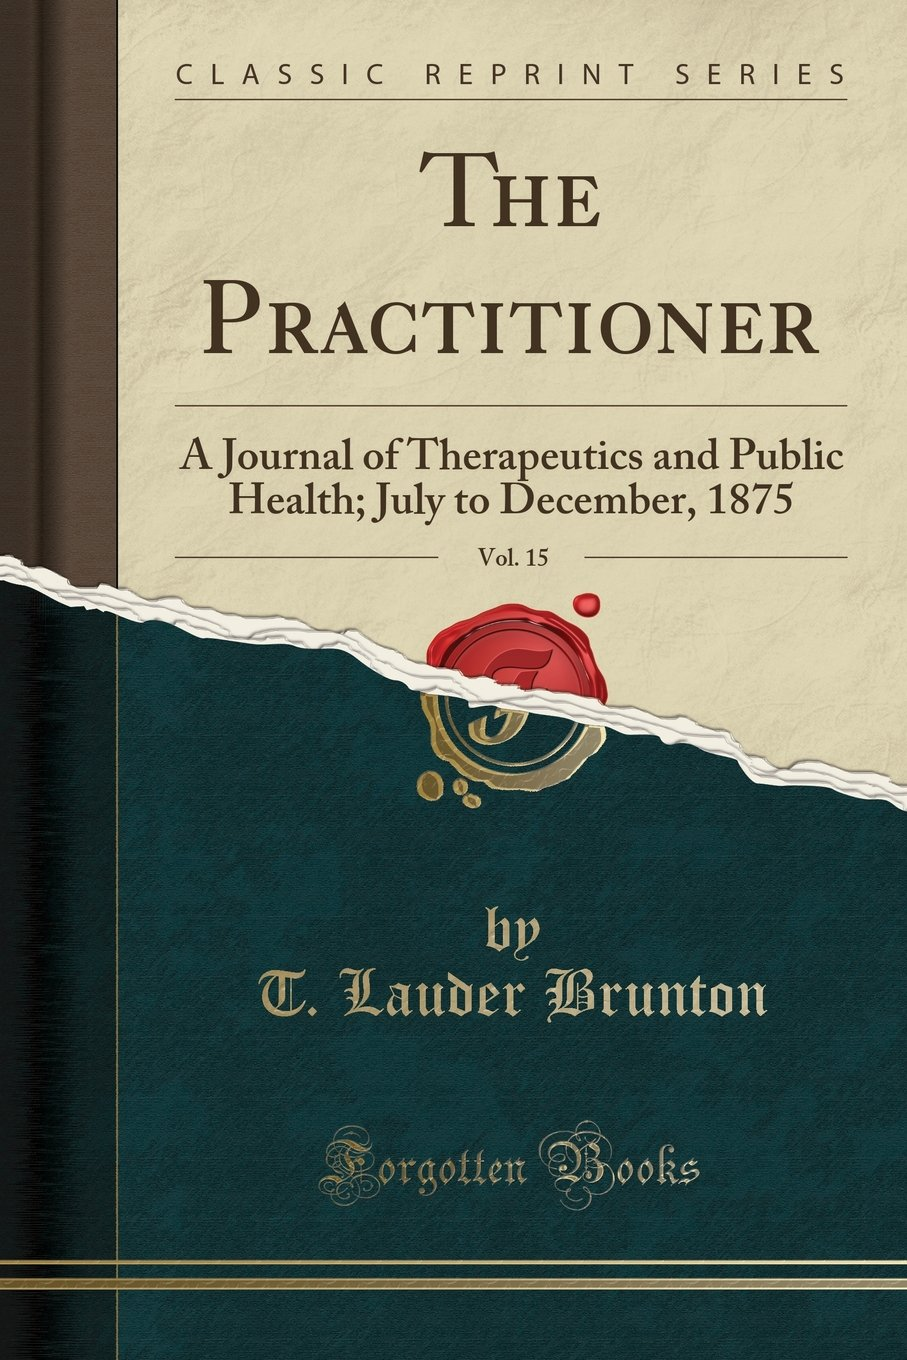 Read Online The Practitioner, Vol. 15: A Journal of Therapeutics and Public Health; July to December, 1875 (Classic Reprint) PDF